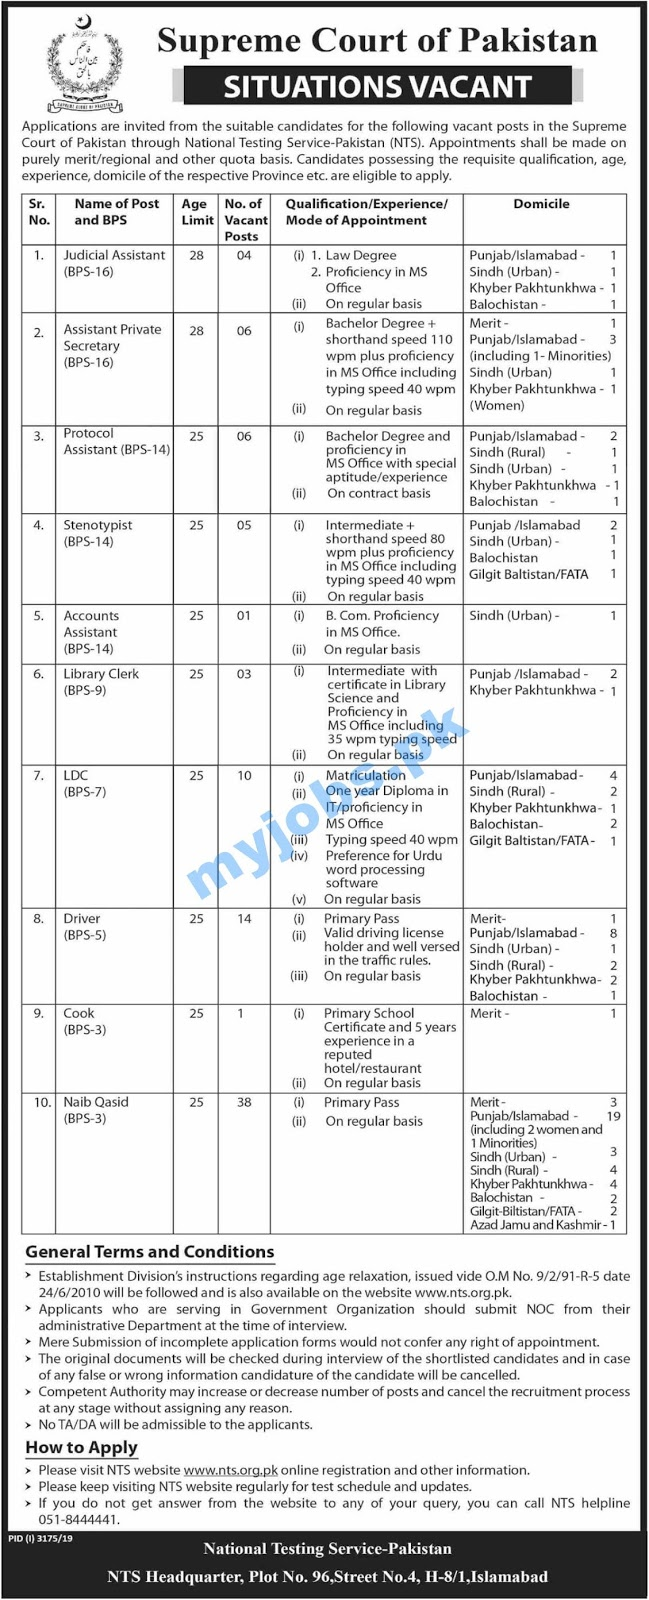 Latest Jobs in Supreme Court of Pakistan NTS 2020丨Apply Now